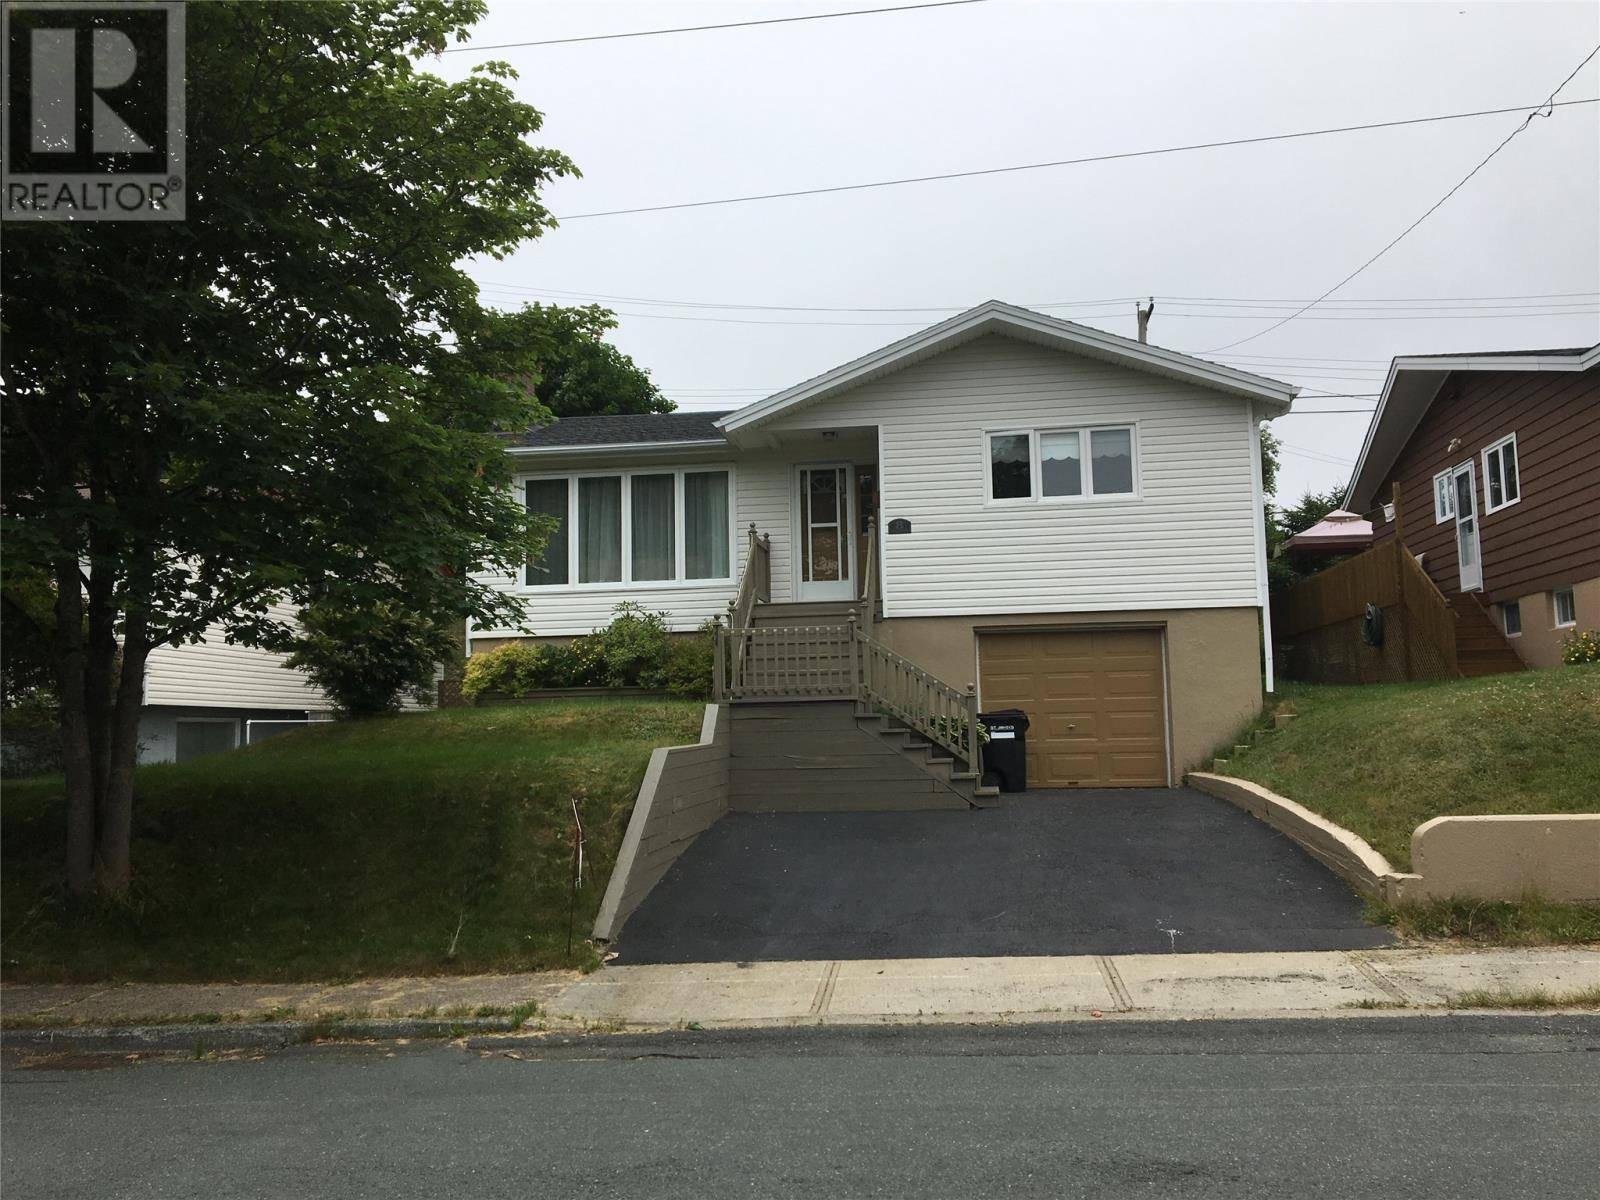 House for sale at 8 Macpherson Ave St. John's Newfoundland - MLS: 1200584